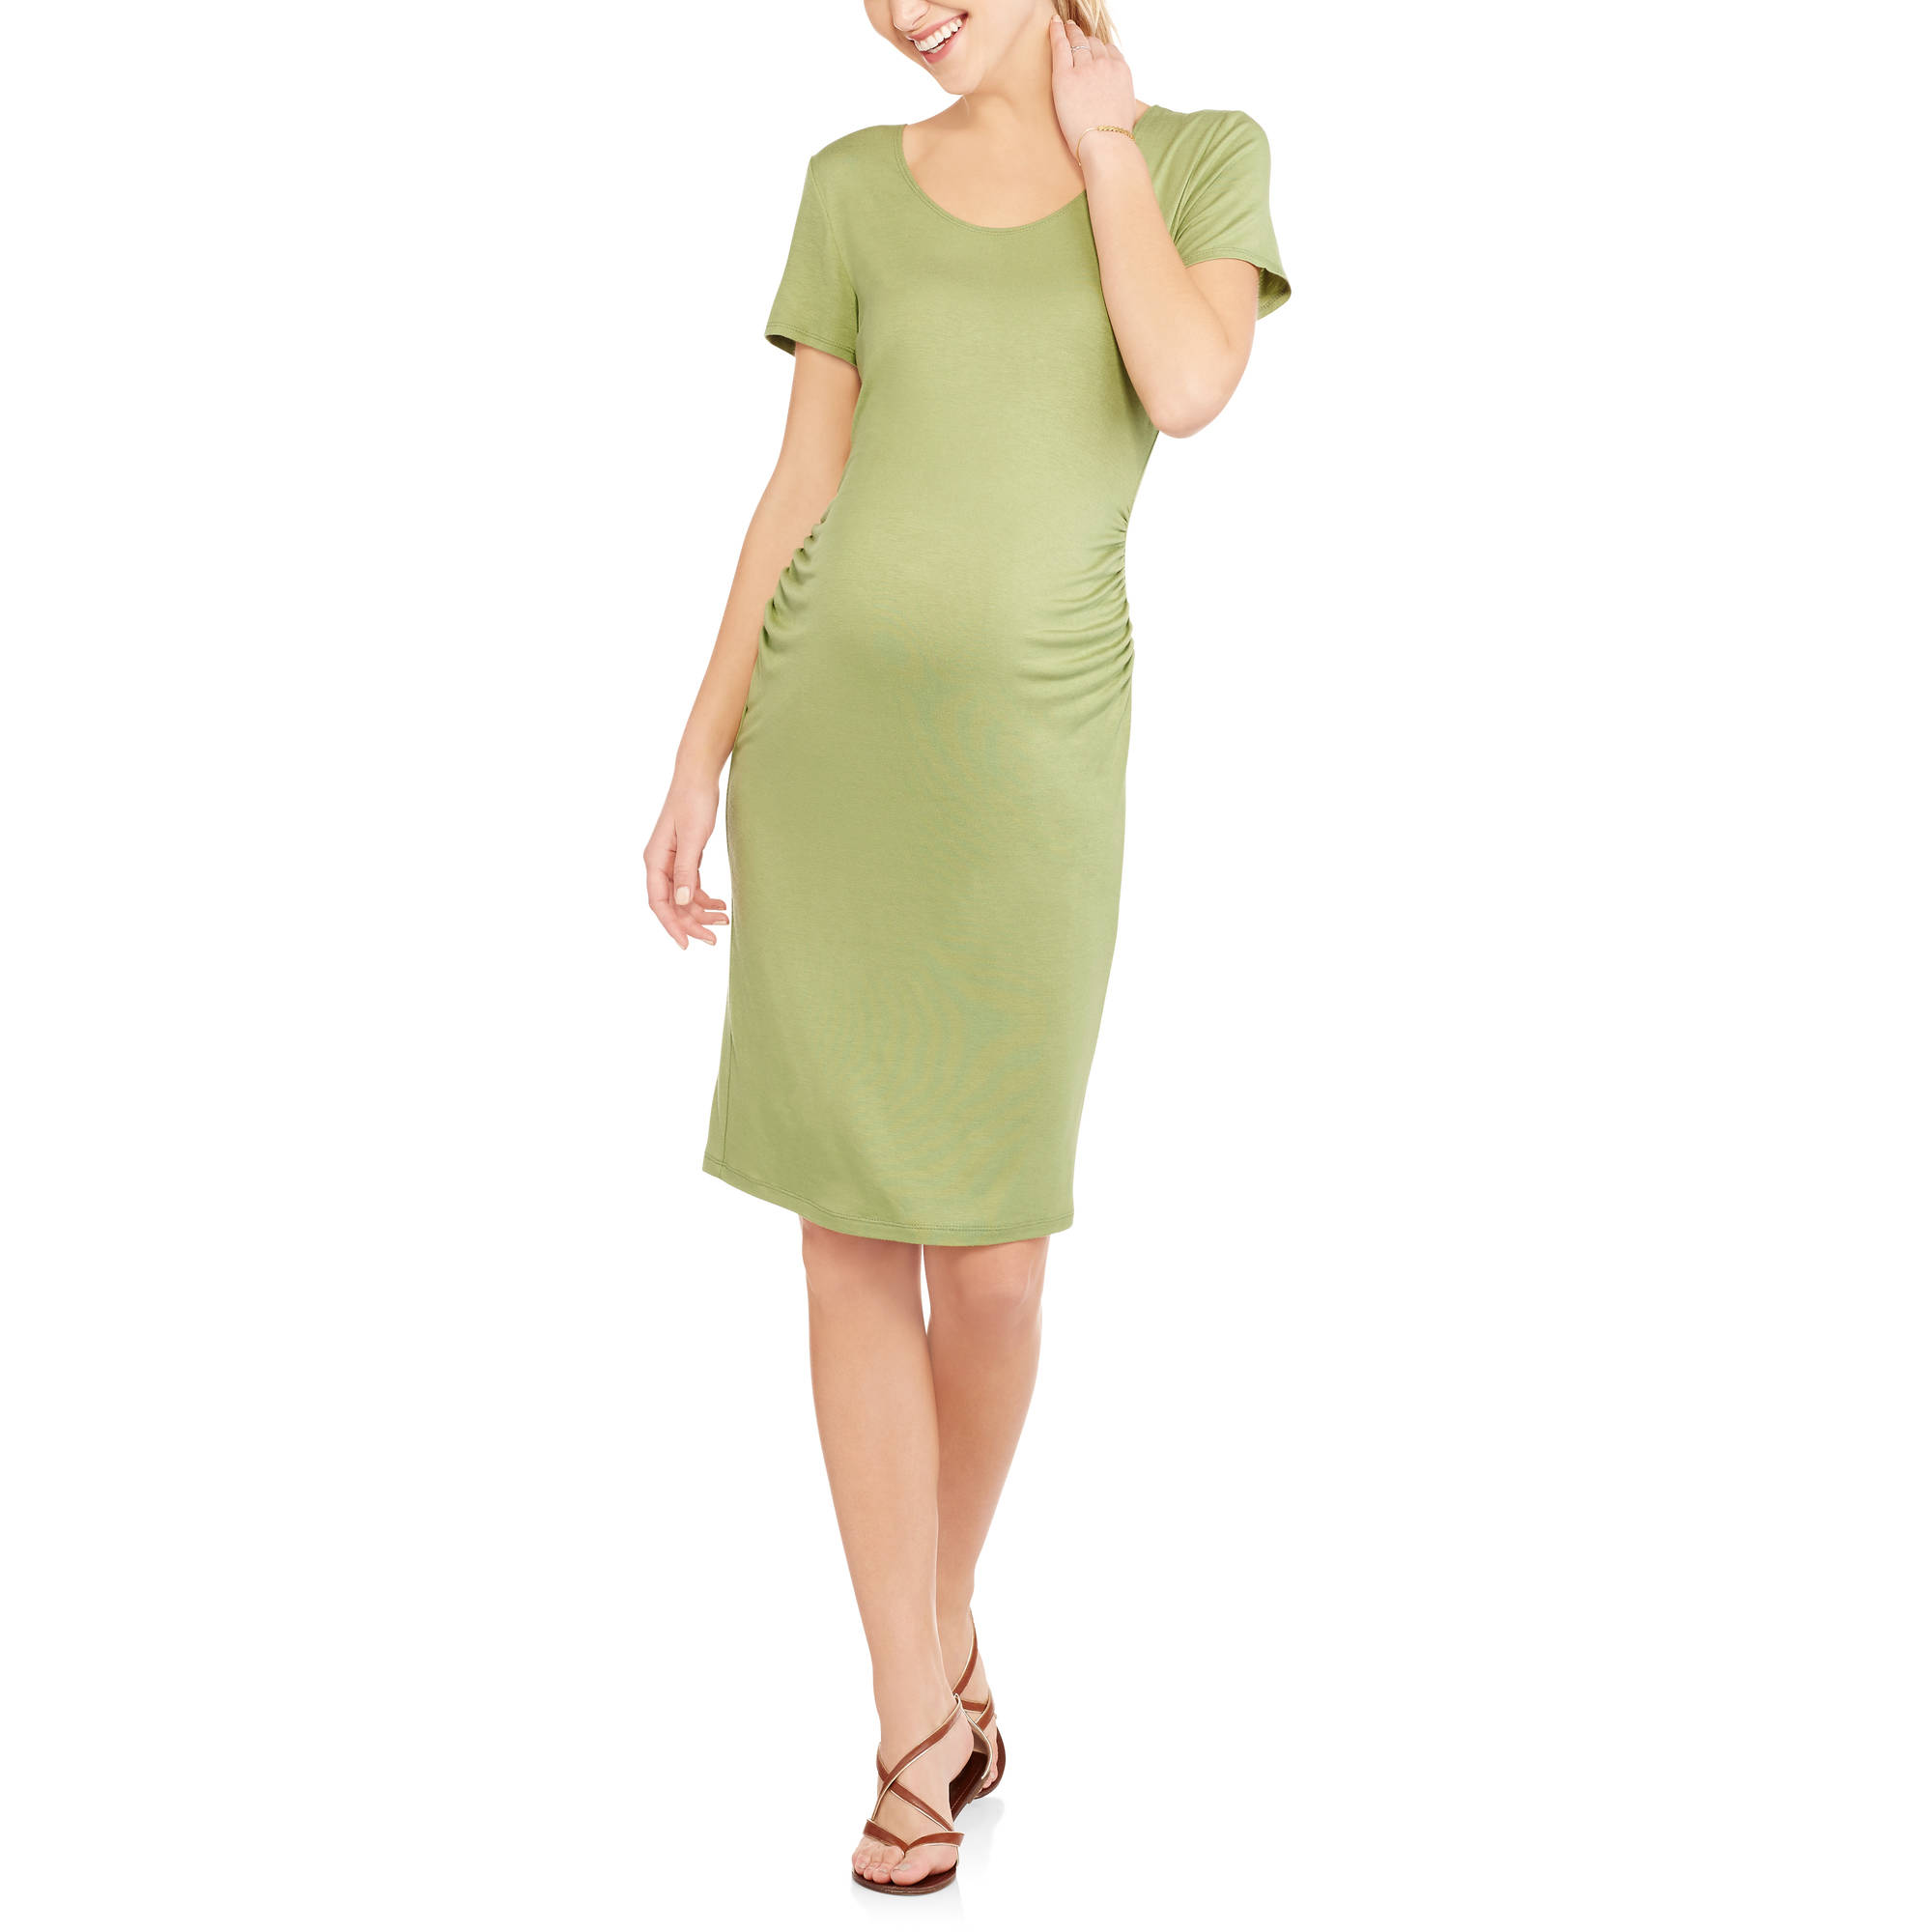 Glamour & Co. Maternity Short Sleeve Midi Dress with Flattering Side Ruching